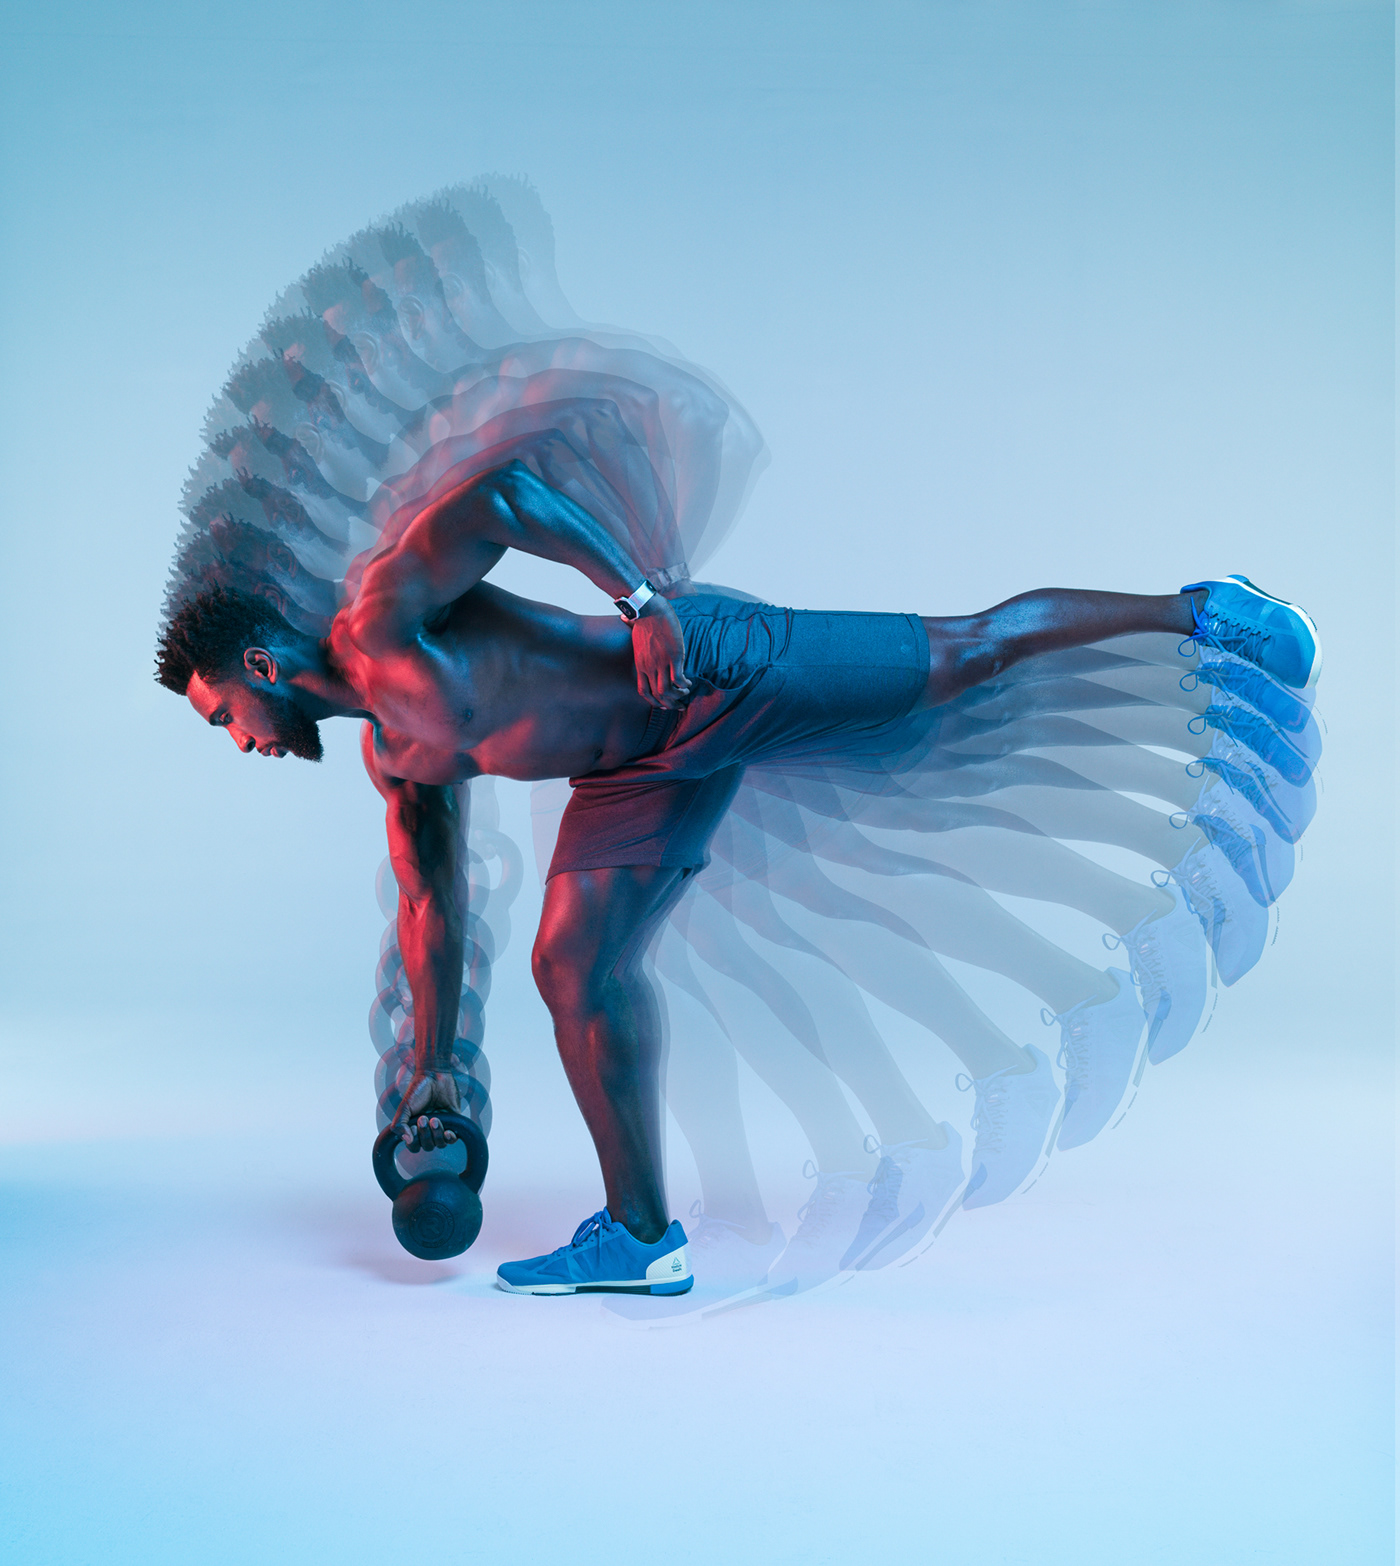 chronophotography multiple exposure fitness muscle gym body man motion blue weights